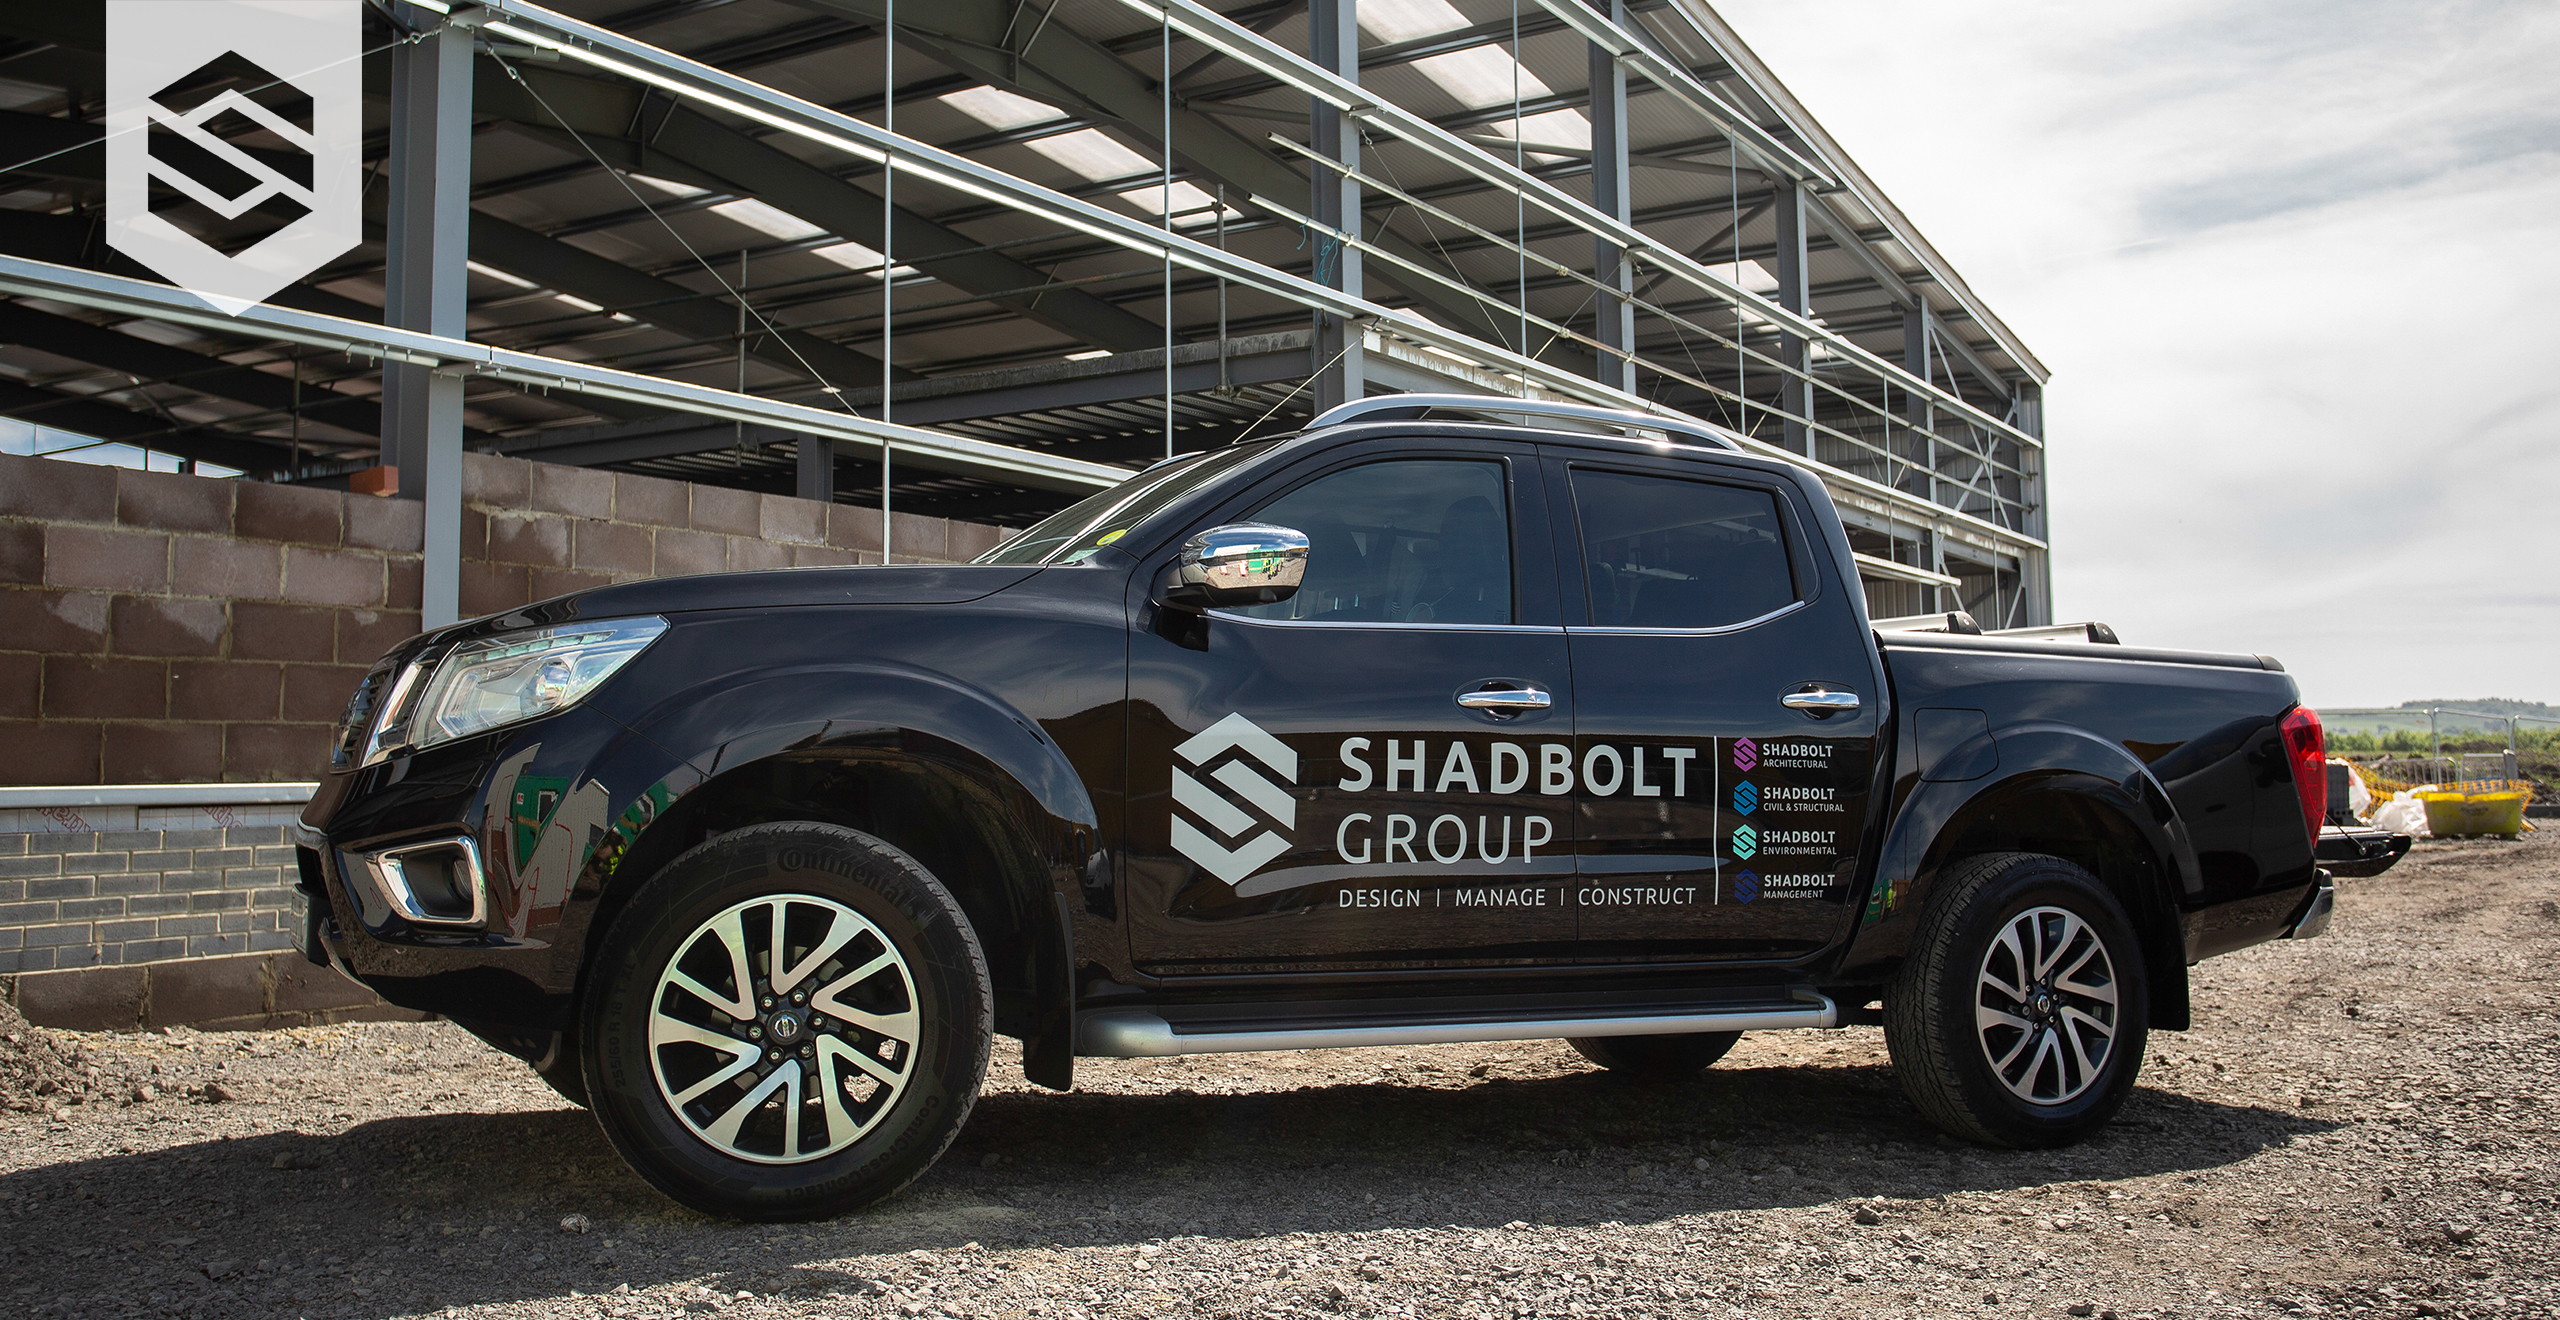 Shadbolt Group to raise profile through new brand and website